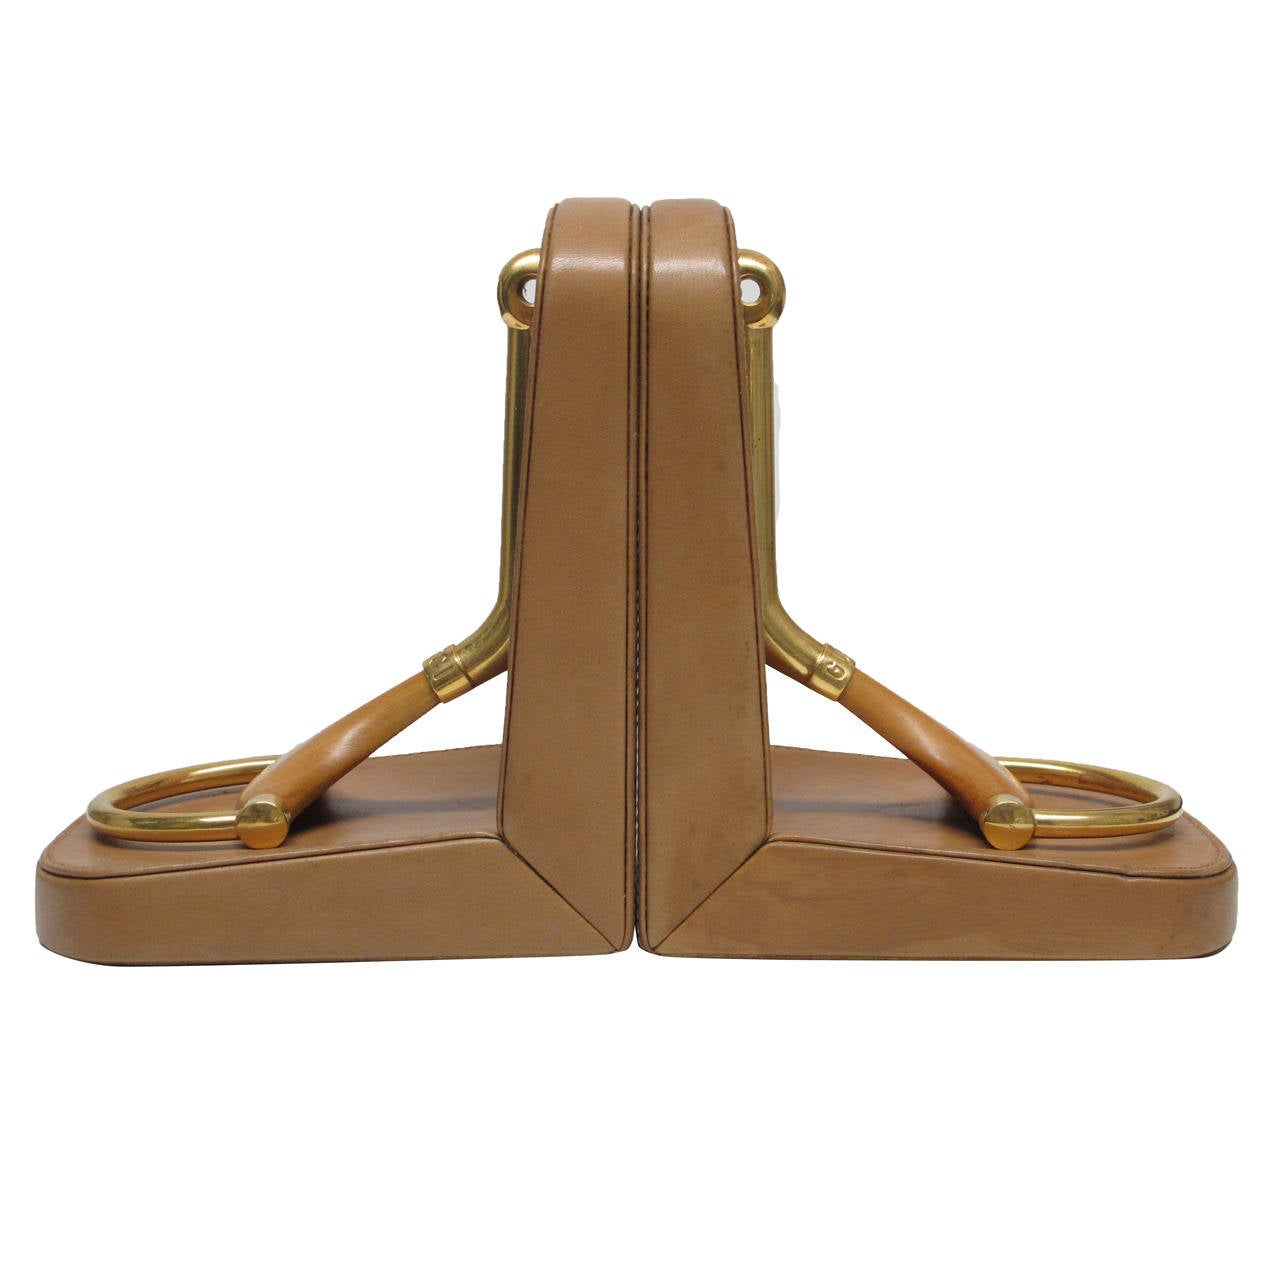 Horsebit Gucci Bookends in Brass Wood and Leather at 1stdibs